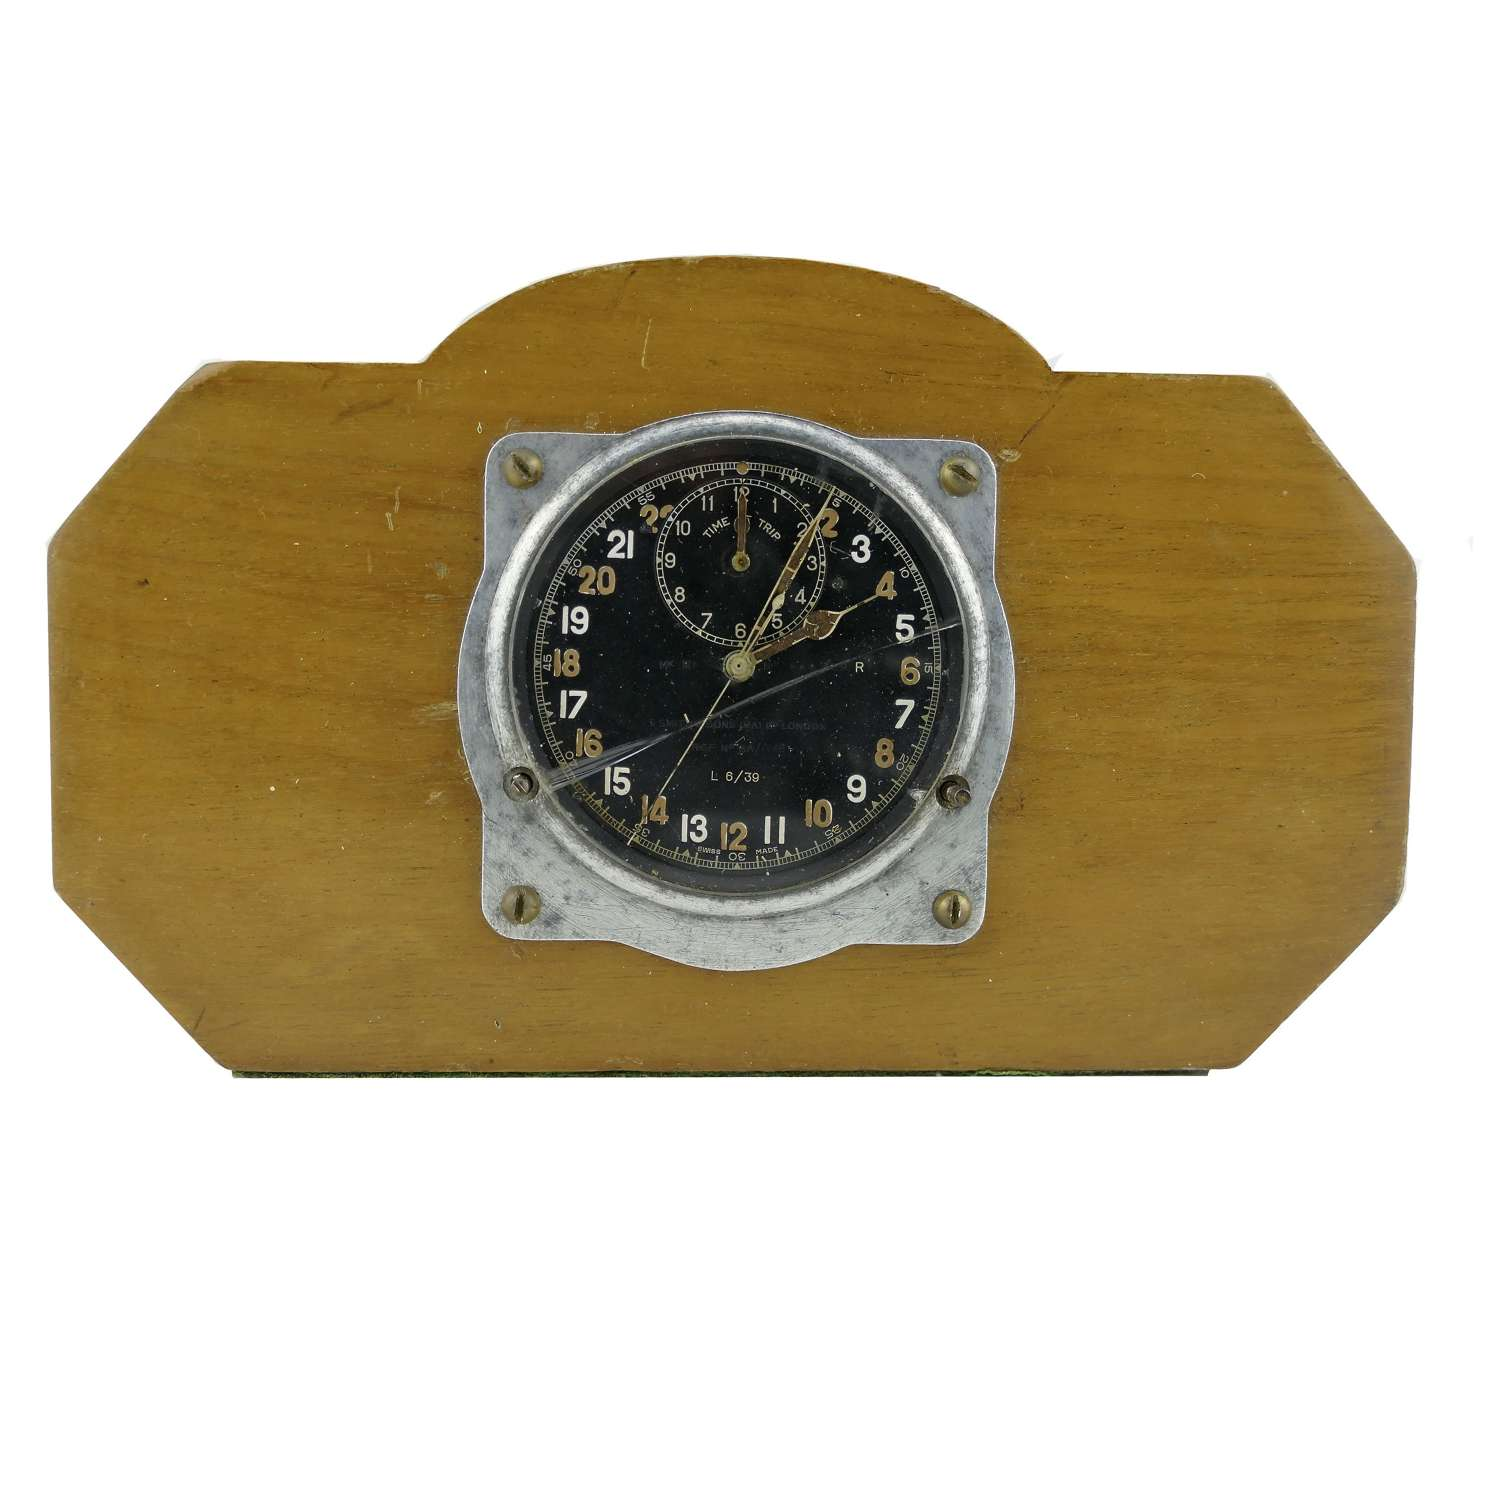 RAF Mk.III aircraft 'time of trip' cockpit clock